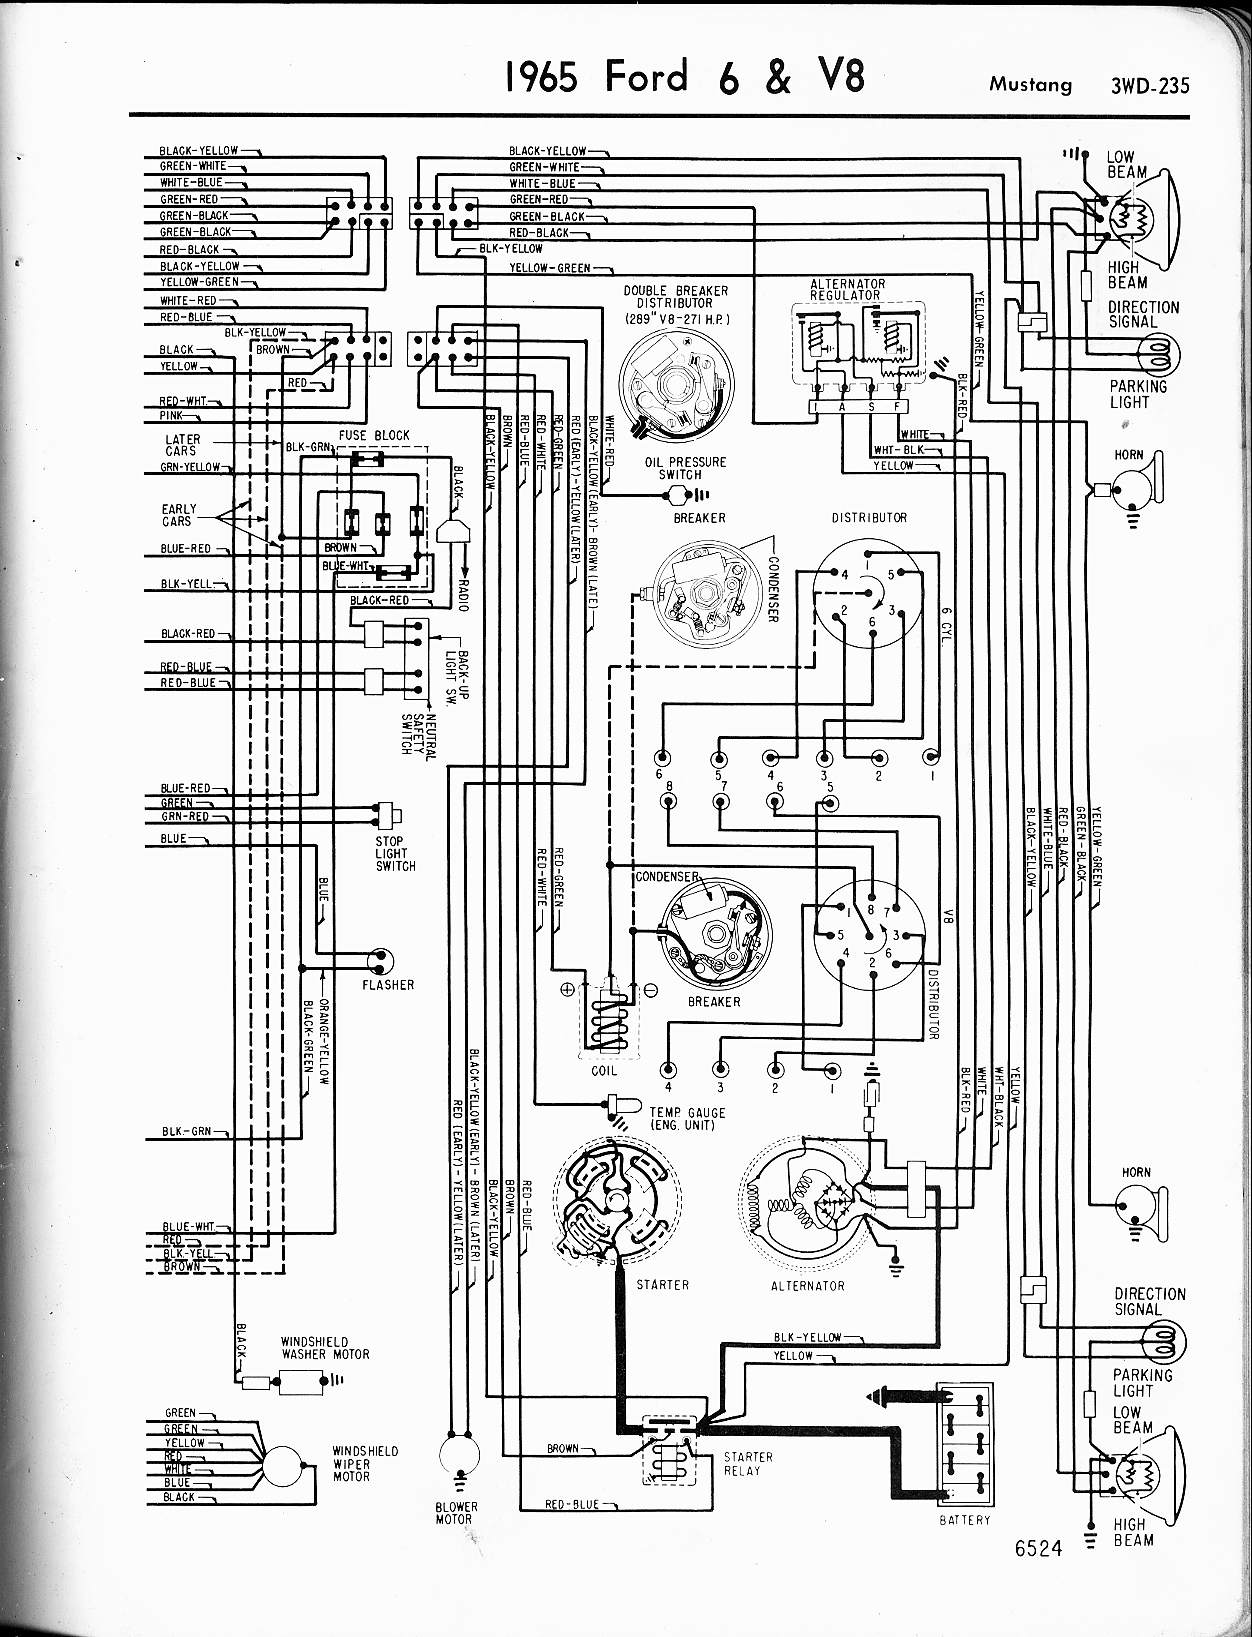 MWire5765 235 alternator wiring ford muscle forums ford muscle cars tech forum mustang 2060 wiring diagram at fashall.co